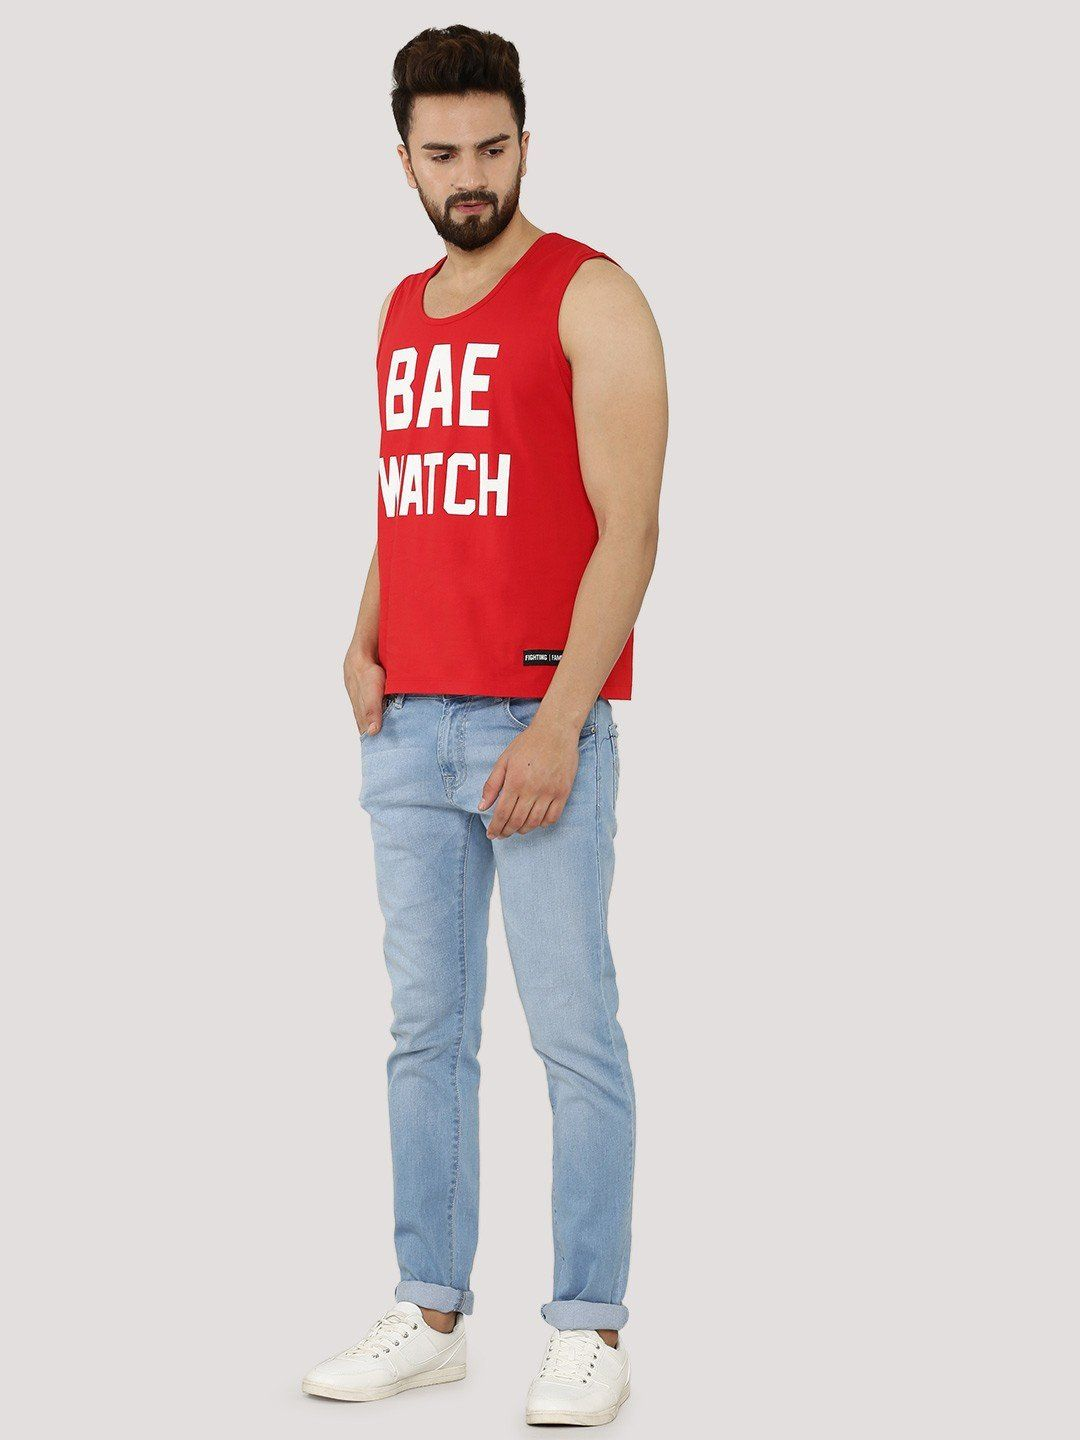 BAE WATCH Red Vest - Fighting Fame  - 4